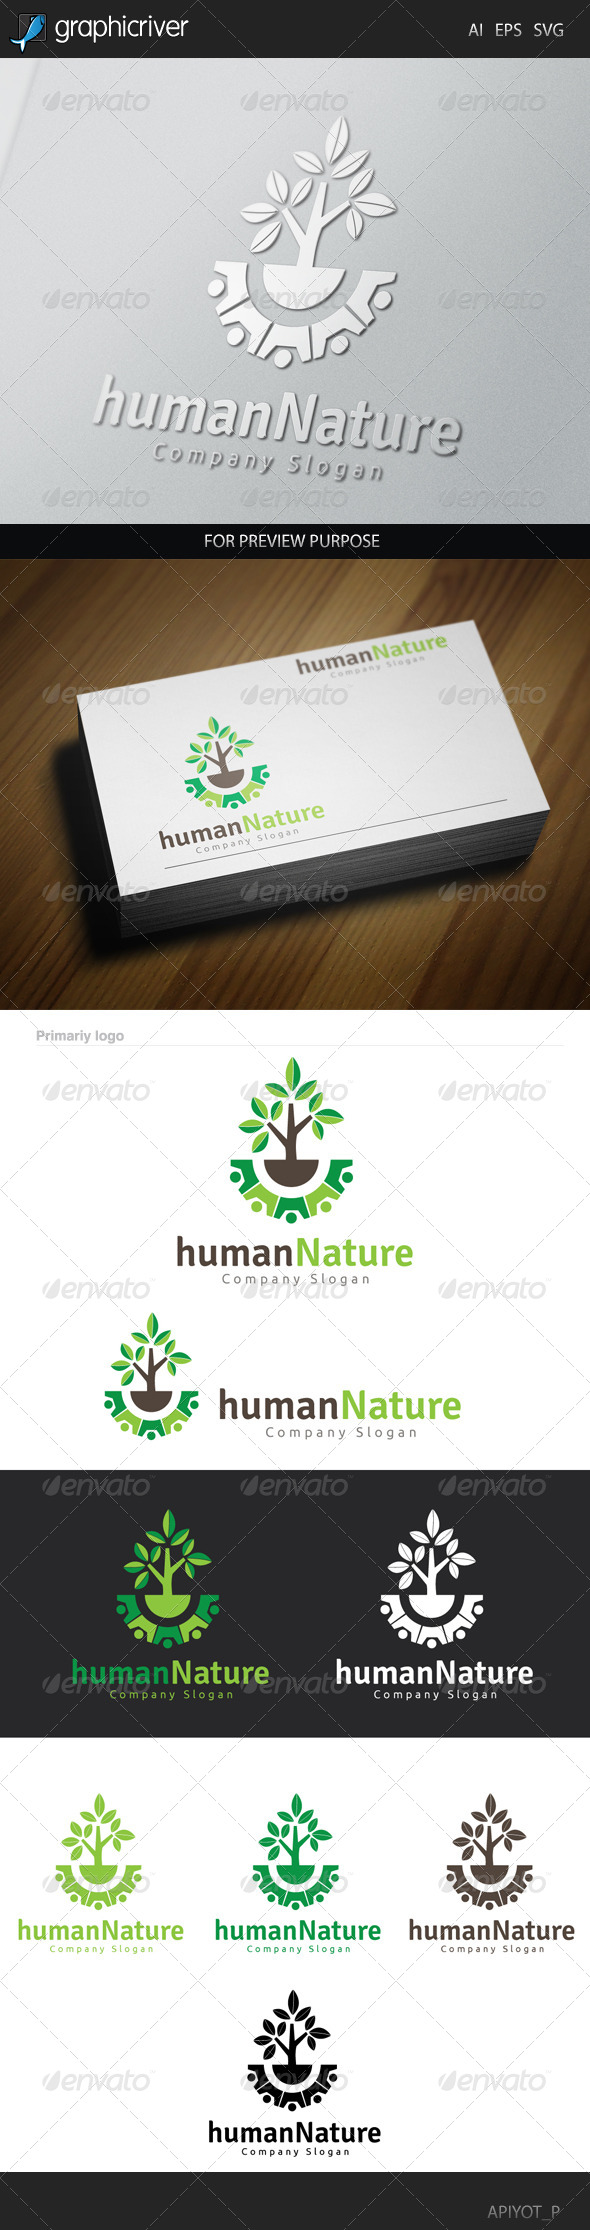 GraphicRiver Human Nature Logo 8641103